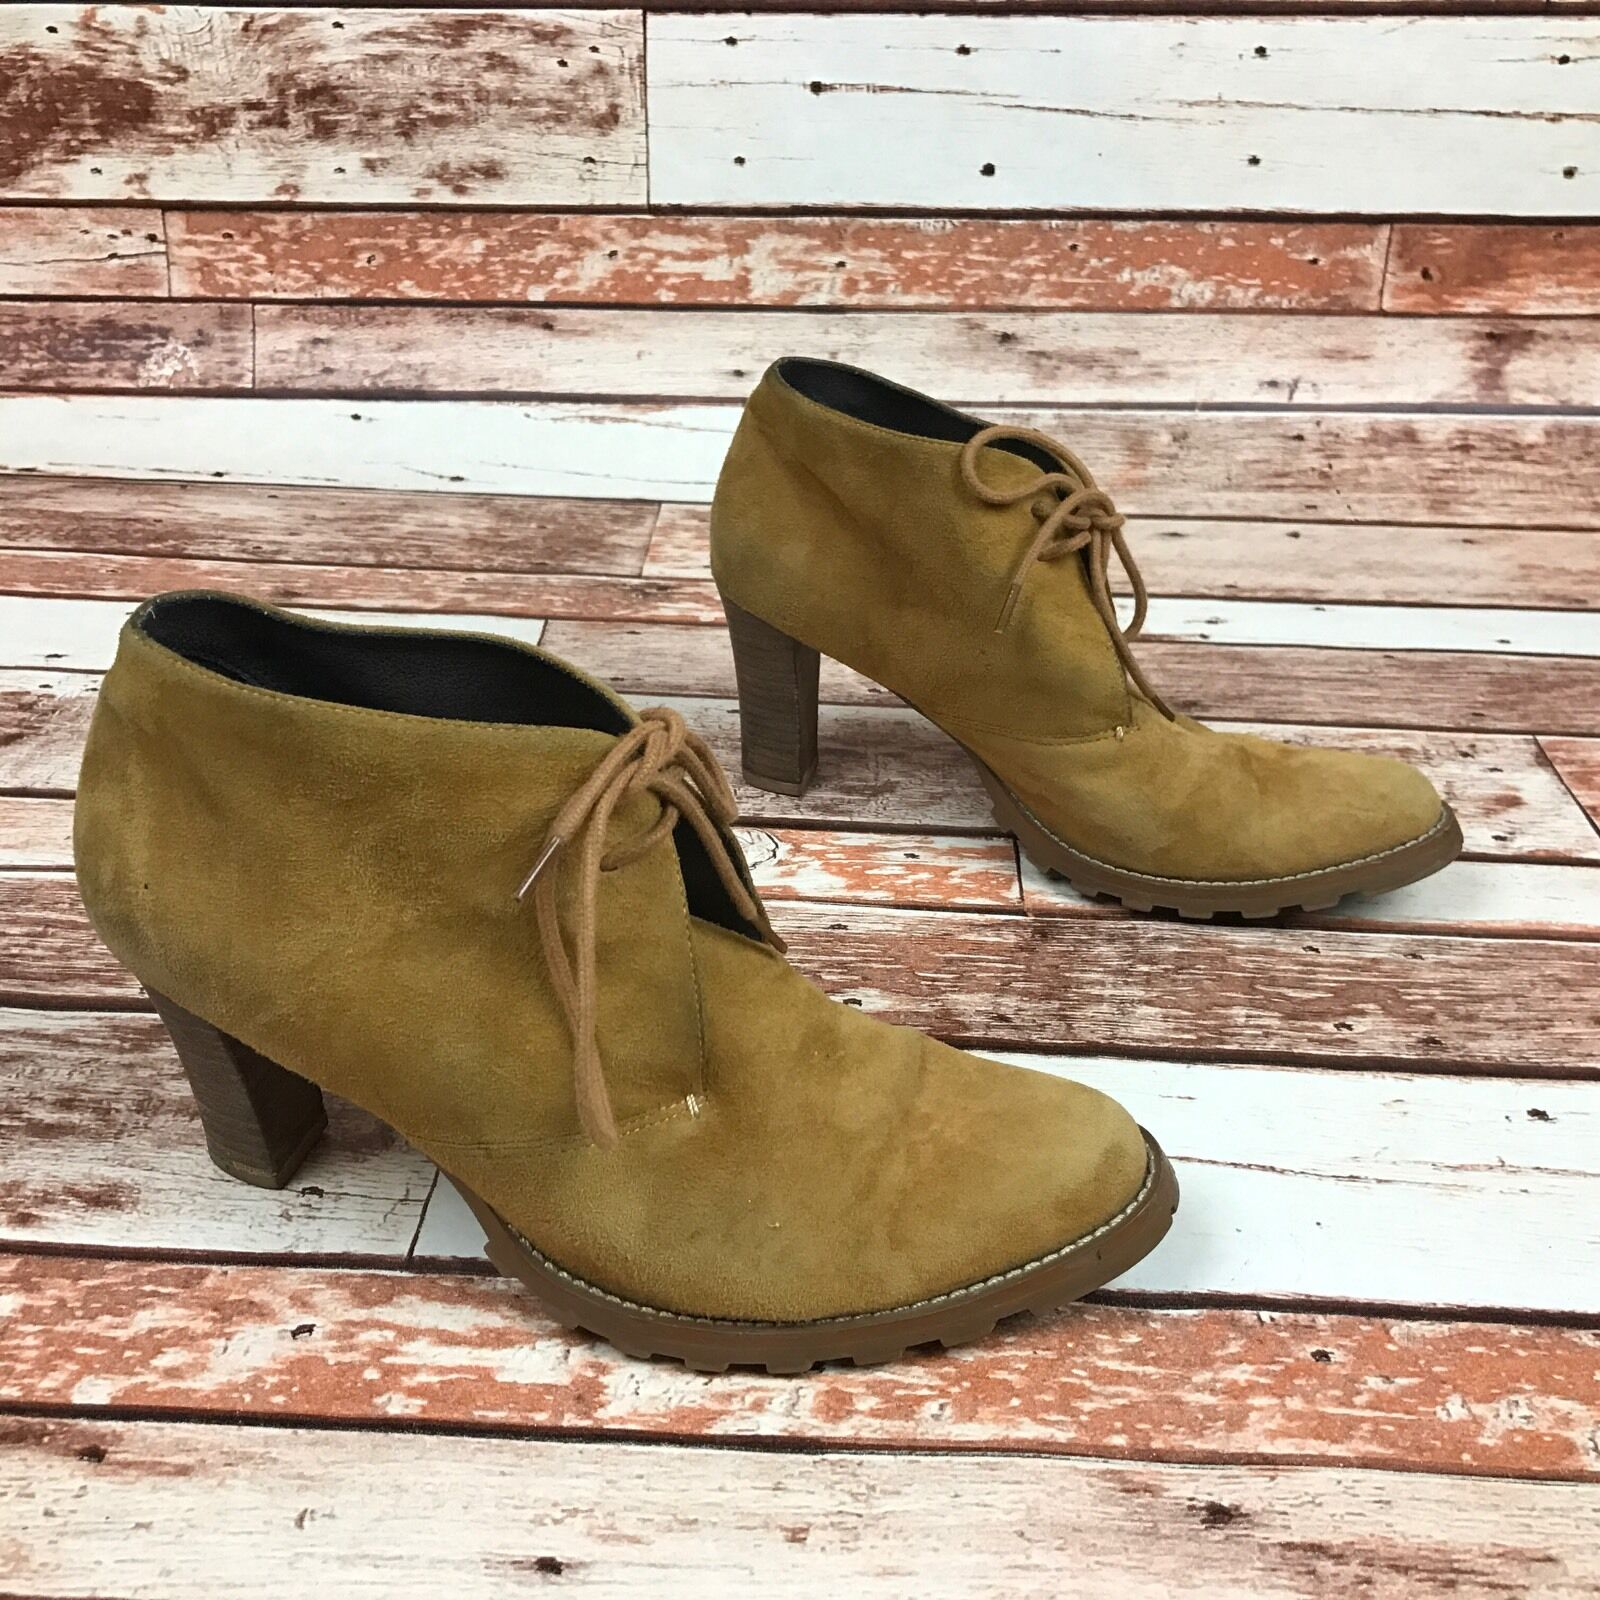 Mossimo Camel Tan Leather Suede Ankle Bootie Women's 8 1/2 High Heels Boots